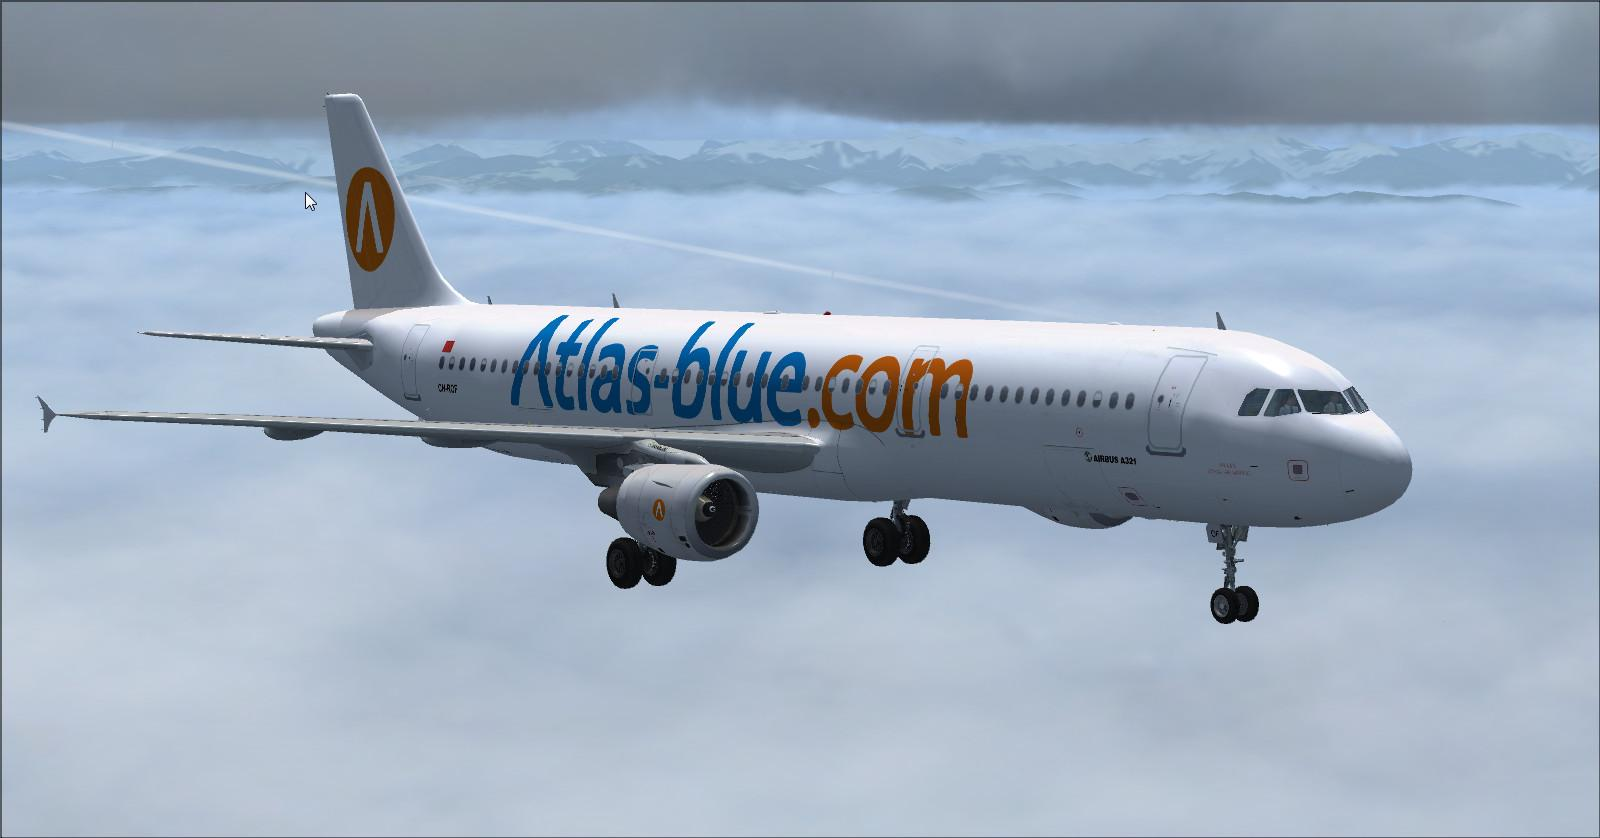 A321-211 Atlas-Blue